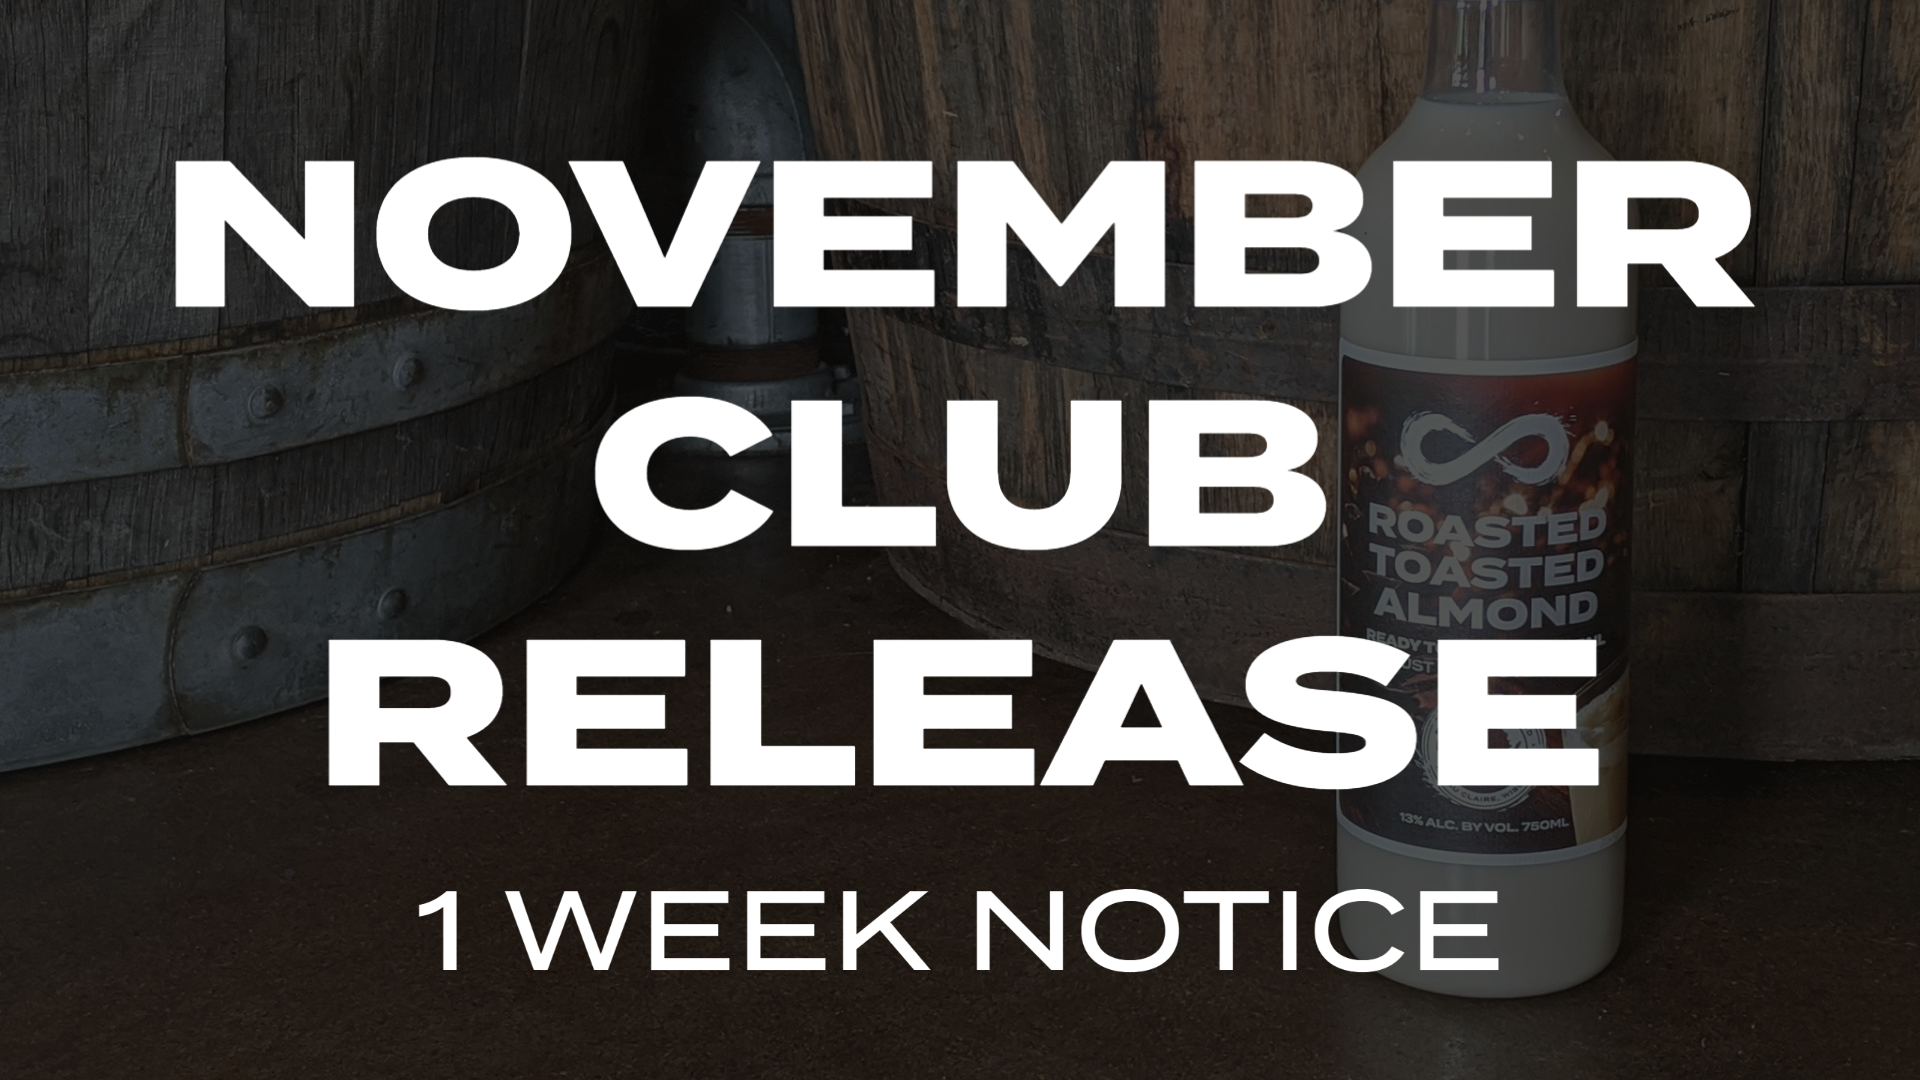 November Club Release 1 Week Notice